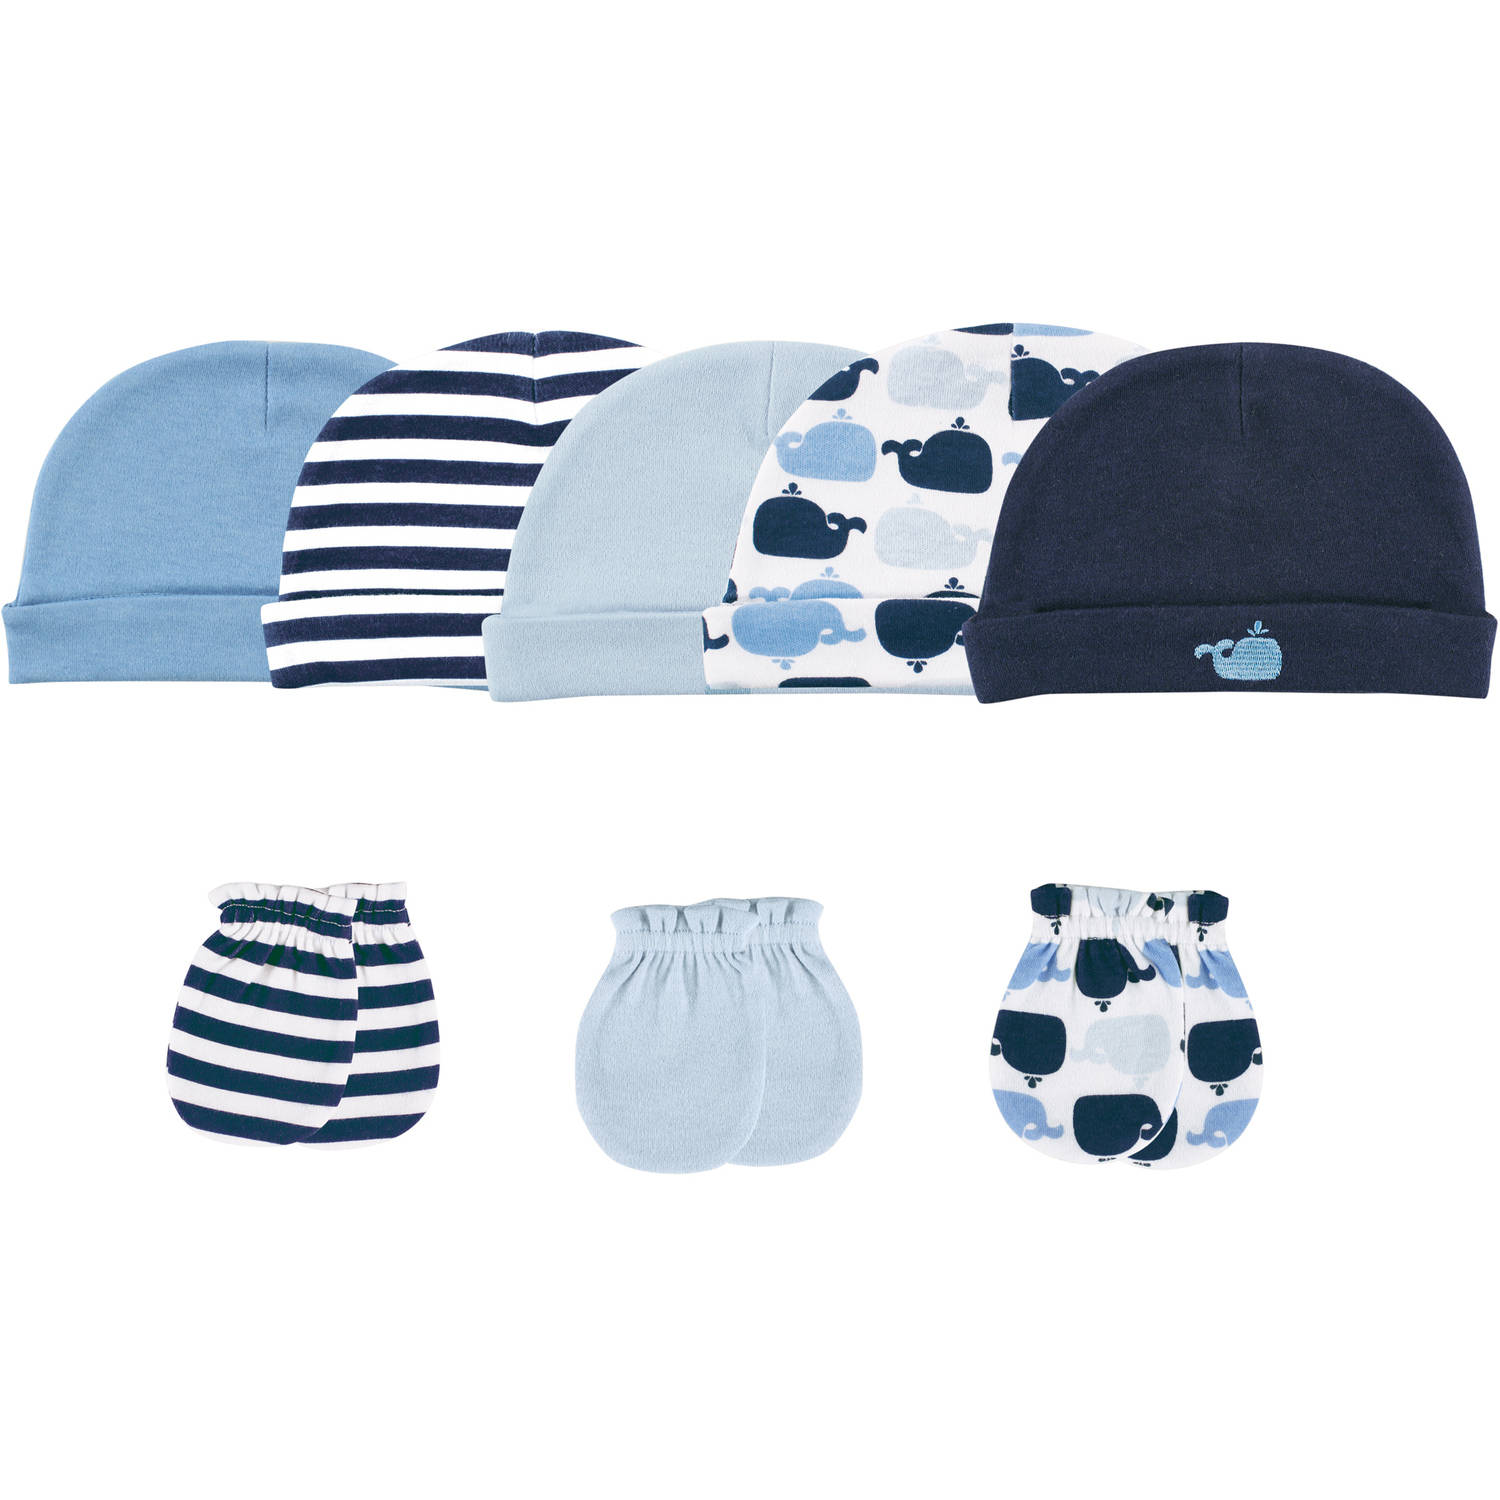 Luvable Friends Newborn Baby Boys Cap 5-Pack & Mitten 3-Pack - Whale, 0-6 months